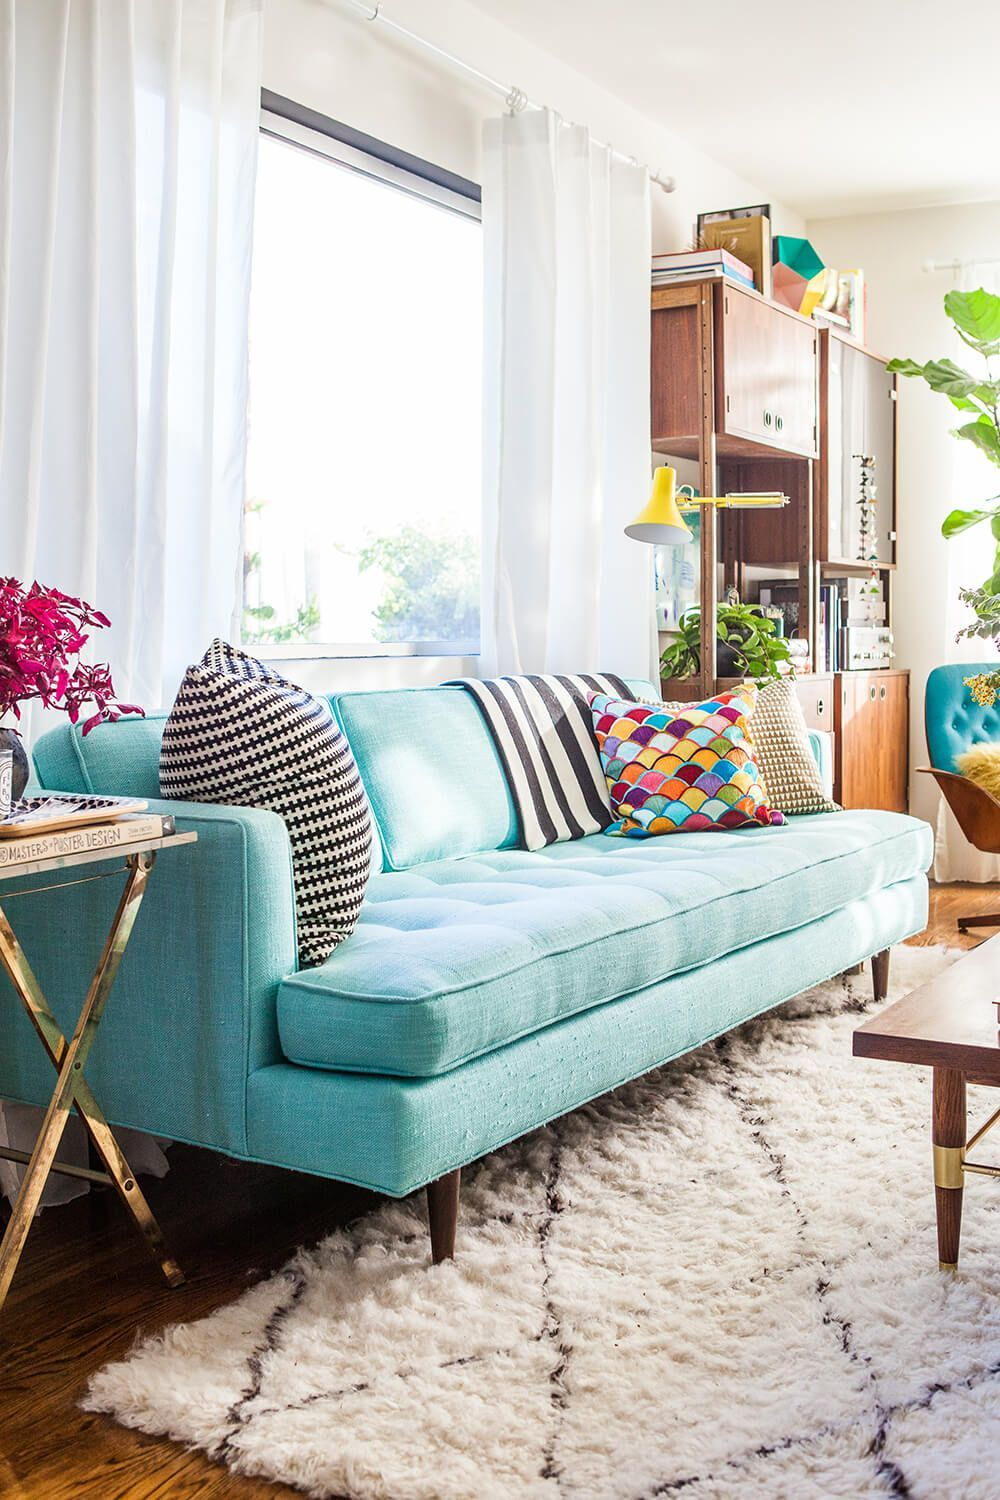 24 Types Of Sofas That Are Great For Your Current Character Modern Sofa Couches Living Room Decor Turquoise Sofa Colorful Couch